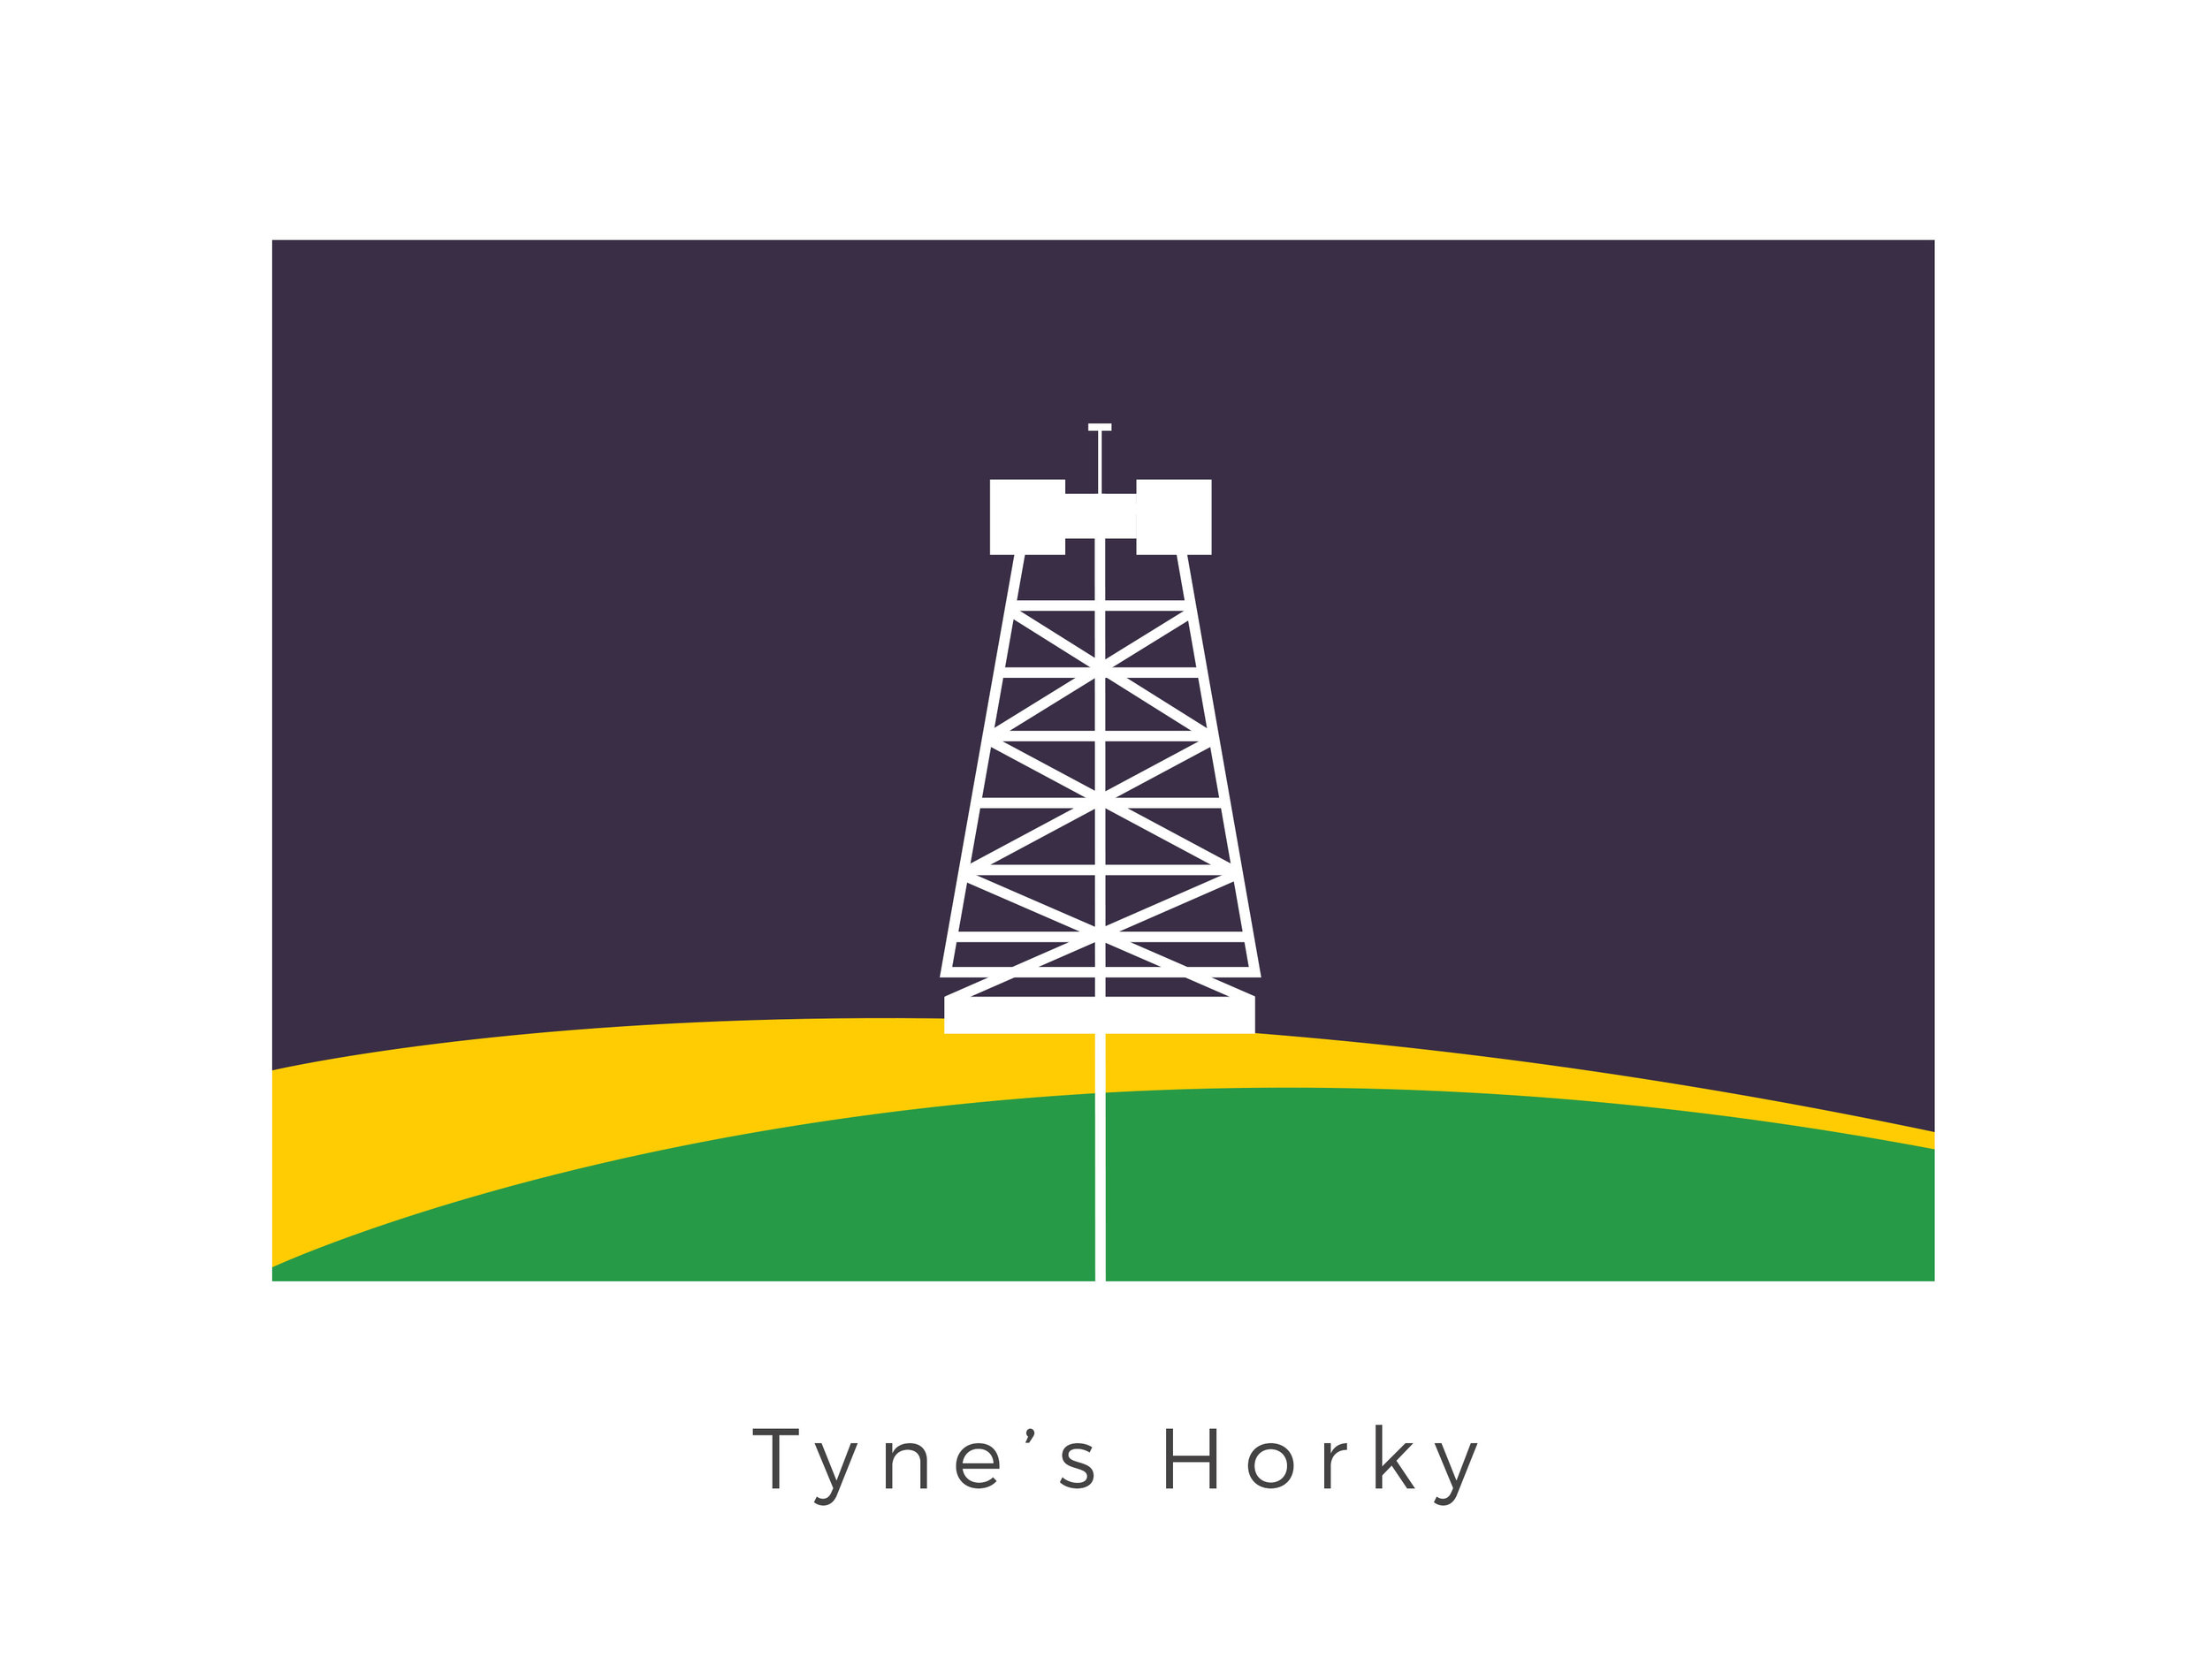 Tyne's Horky  was an ore-rich mining world in Teraab sector. Its streets were full of mining and service droids, used to mine Keschel and Nergon-14. The flag design simply evokes the key export of Tyne's Horky, the graphic being a mining tool while the colours used are that of the exported minerals: Kestrel and Nergon-14.